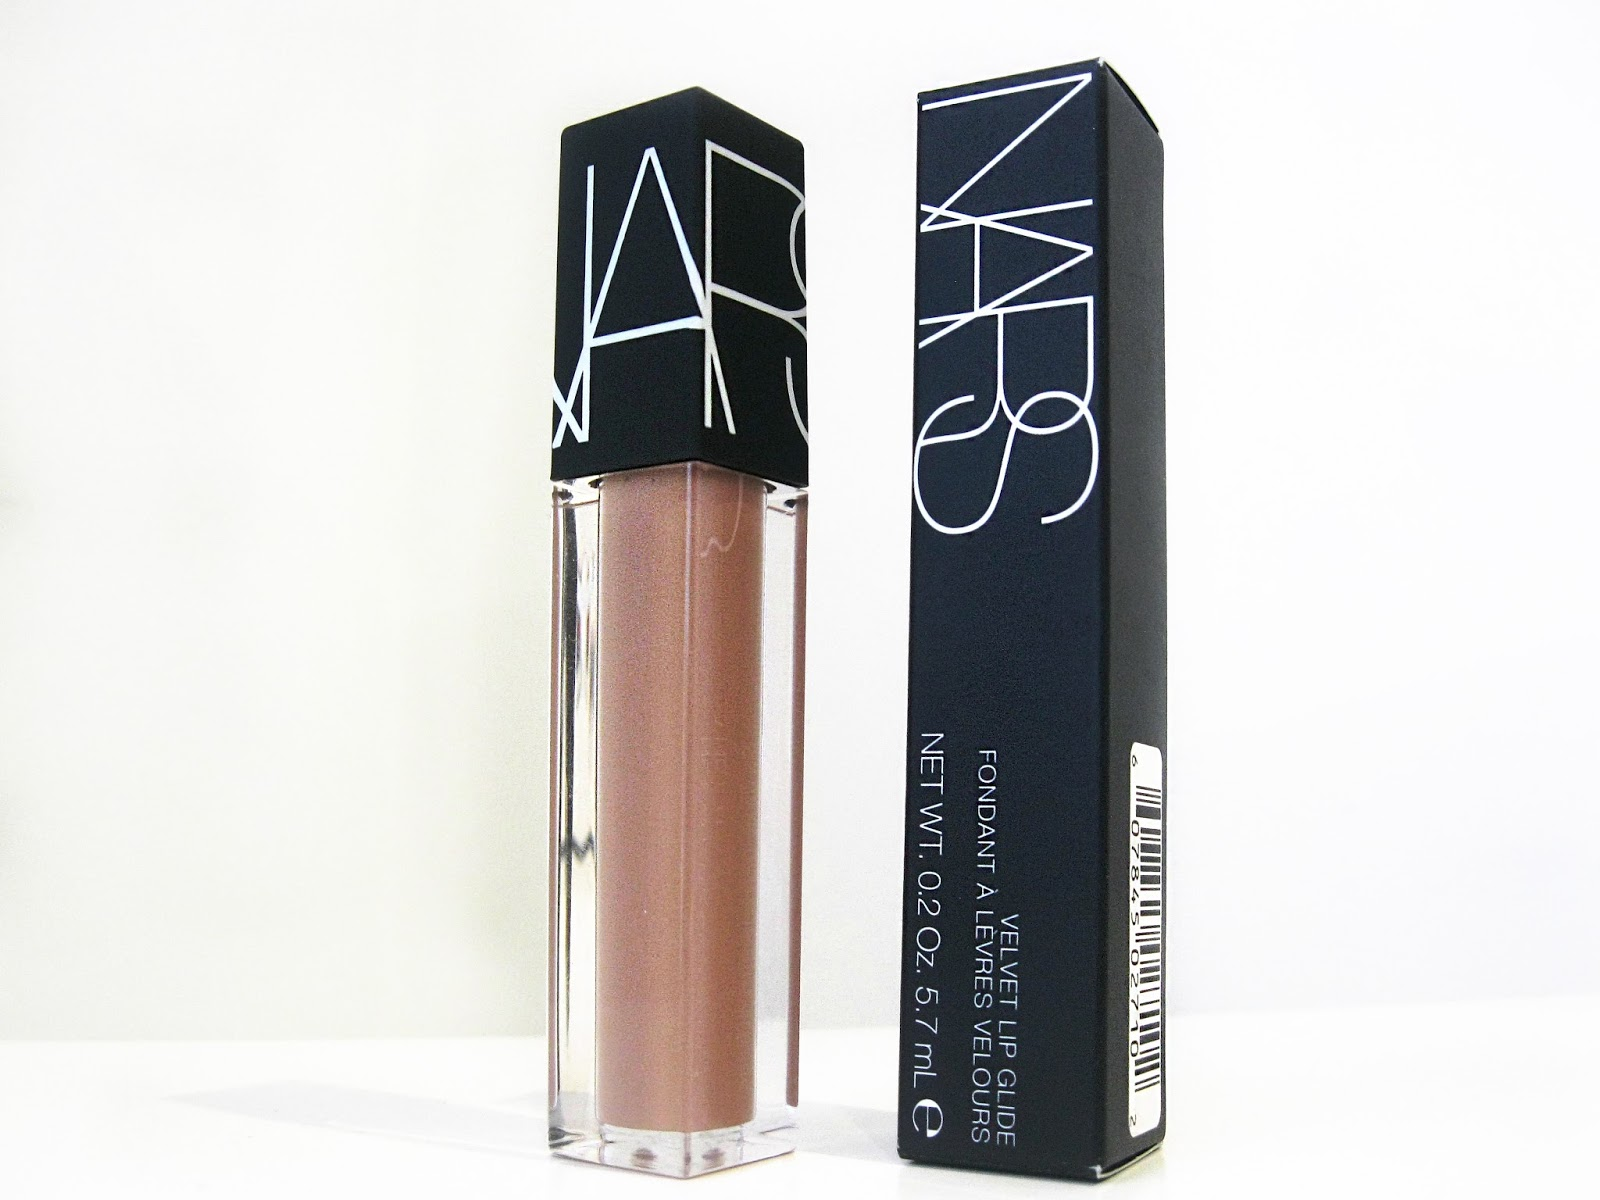 nars, nars velvet lip glide, nars review, liquid lipstick, nude lipsticks for pale skin, non drying liquid lipstick, nars velvet lip glide review, nars stripped, nars velvet lip glide stripped,